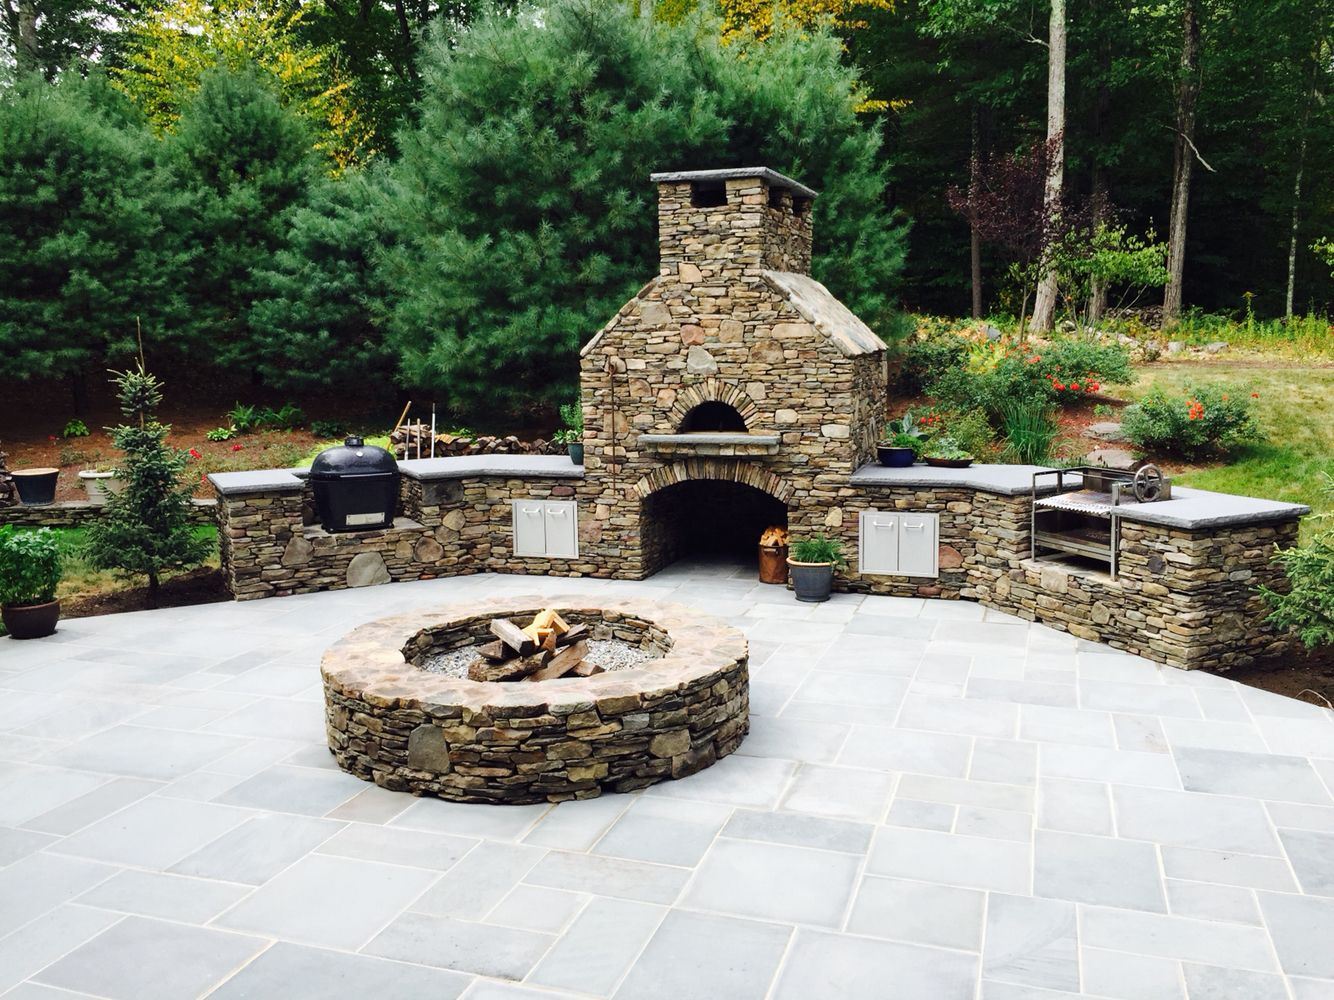 Outdoor Kitchen with pizza oven fire pit smoker and rotisserie – Patio Pizza Oven Plans